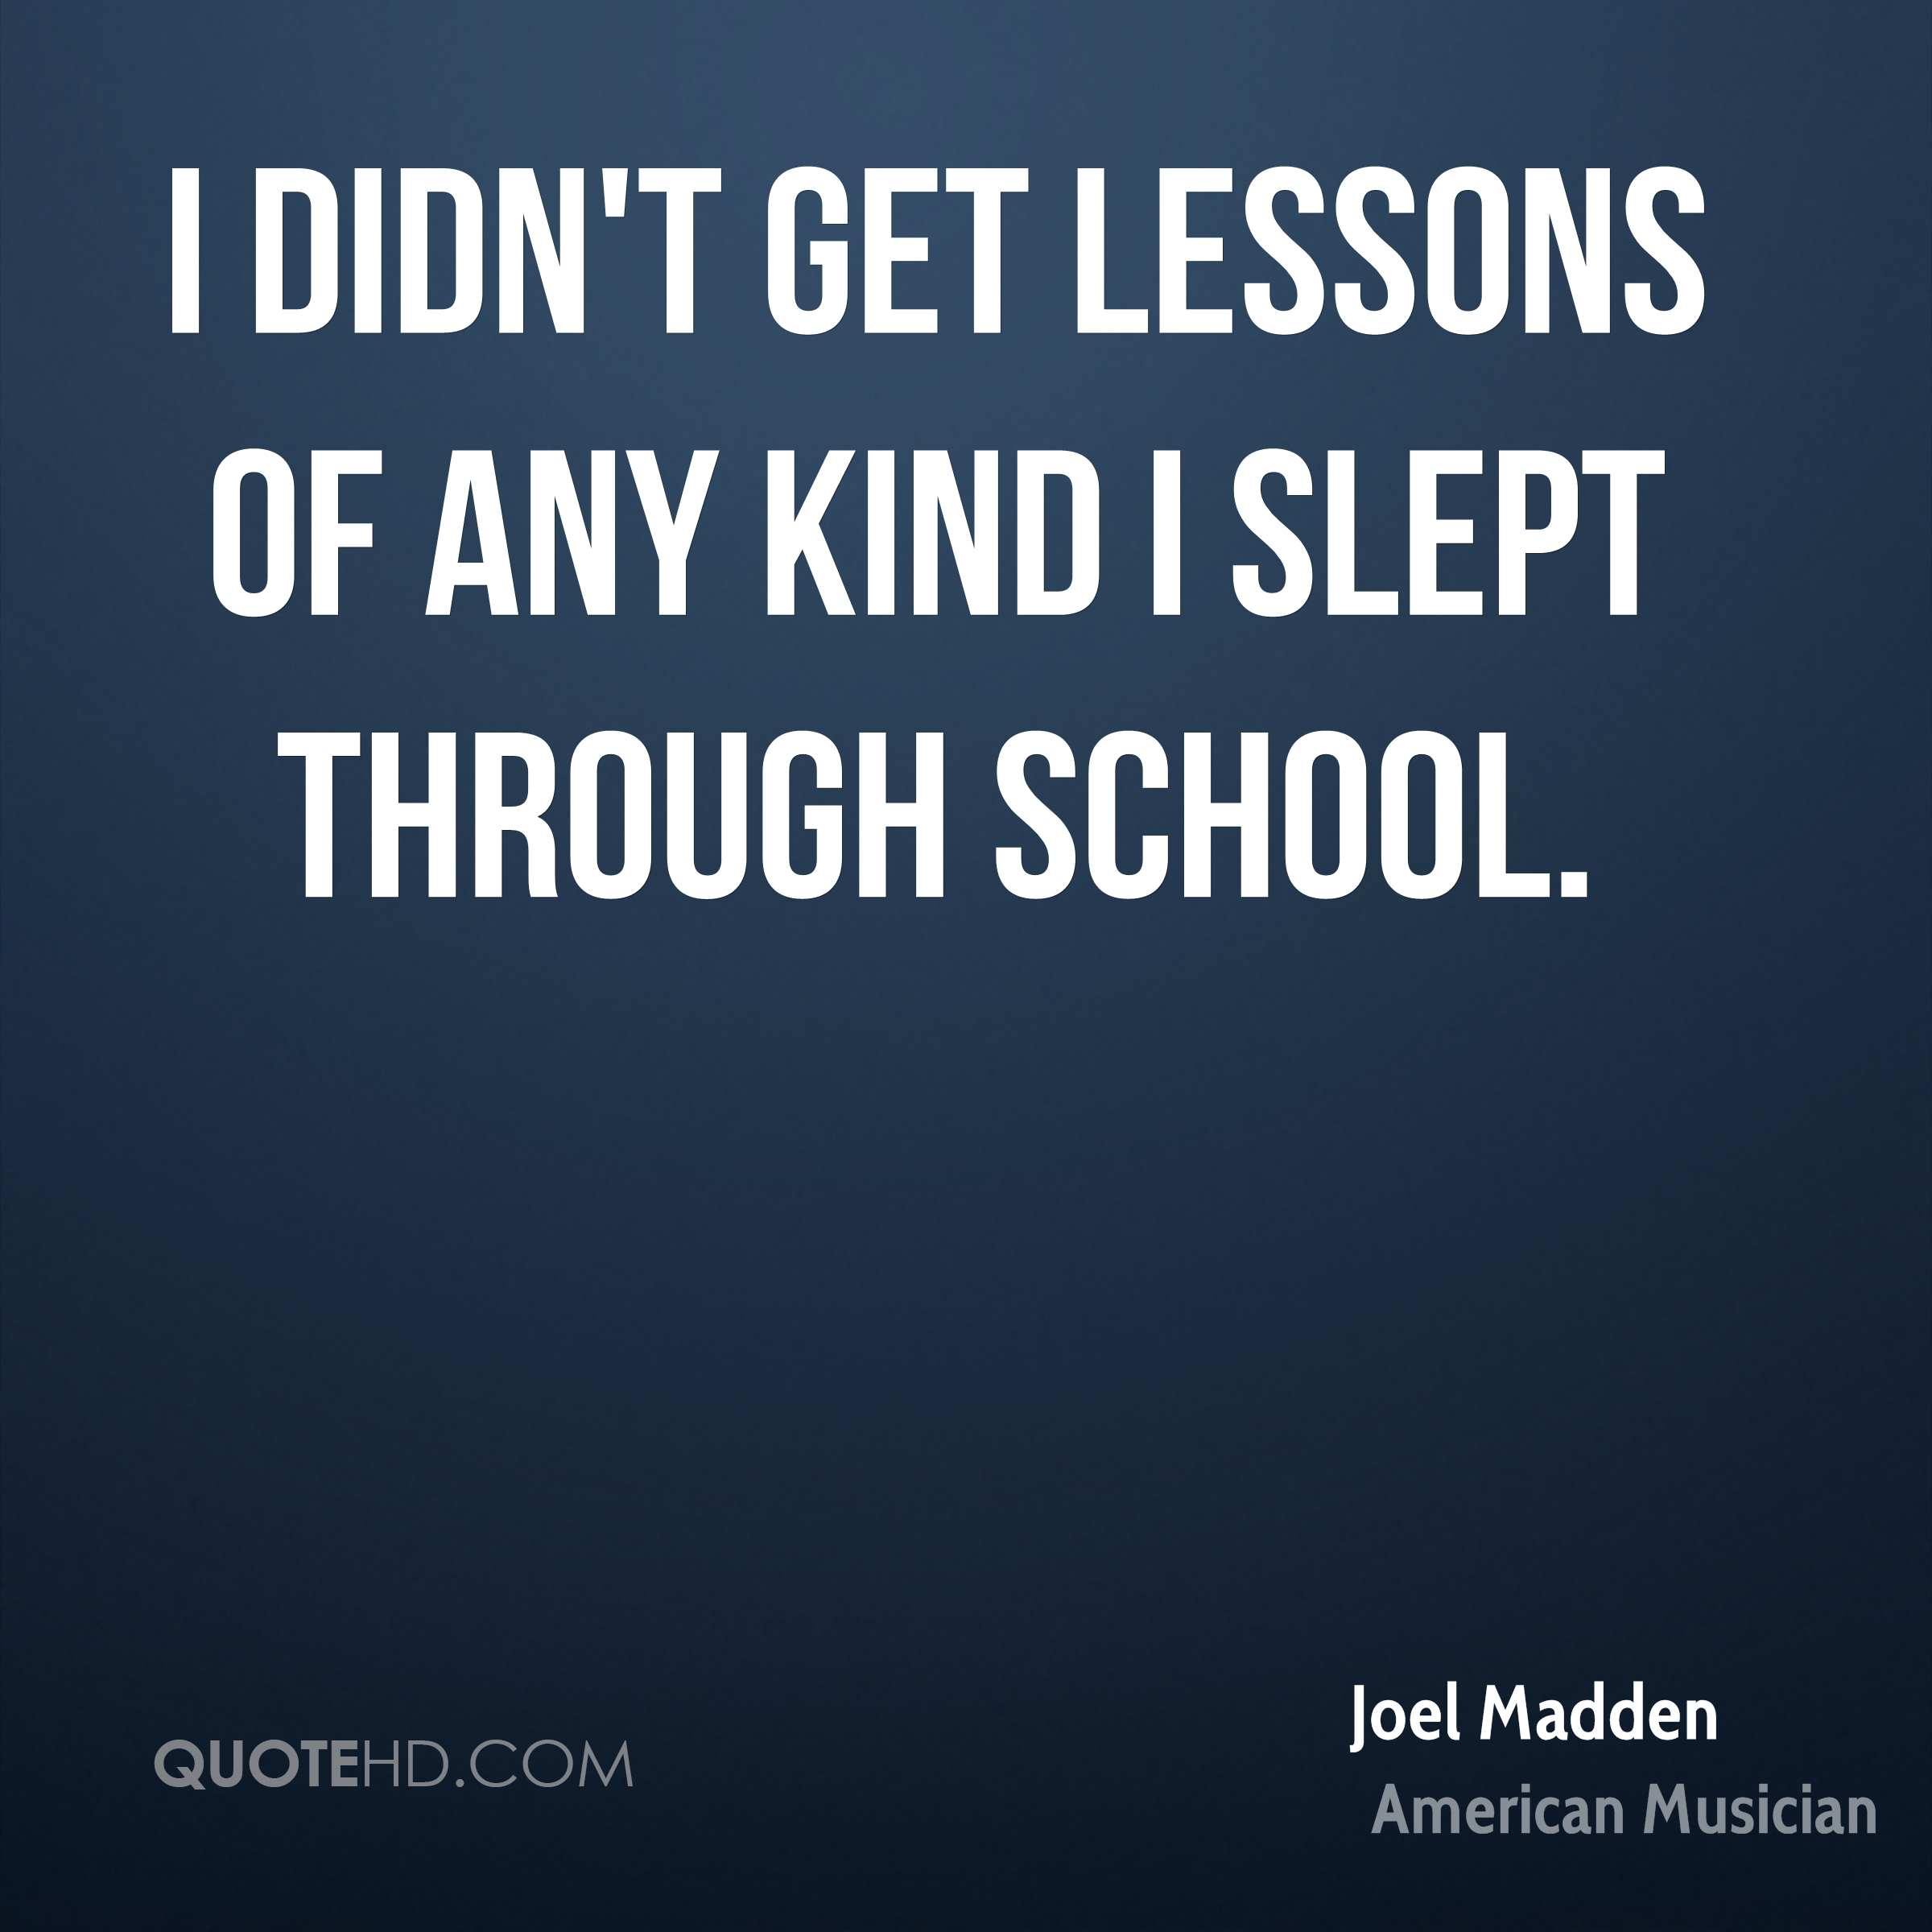 I didn't get lessons of any kind I slept through school.